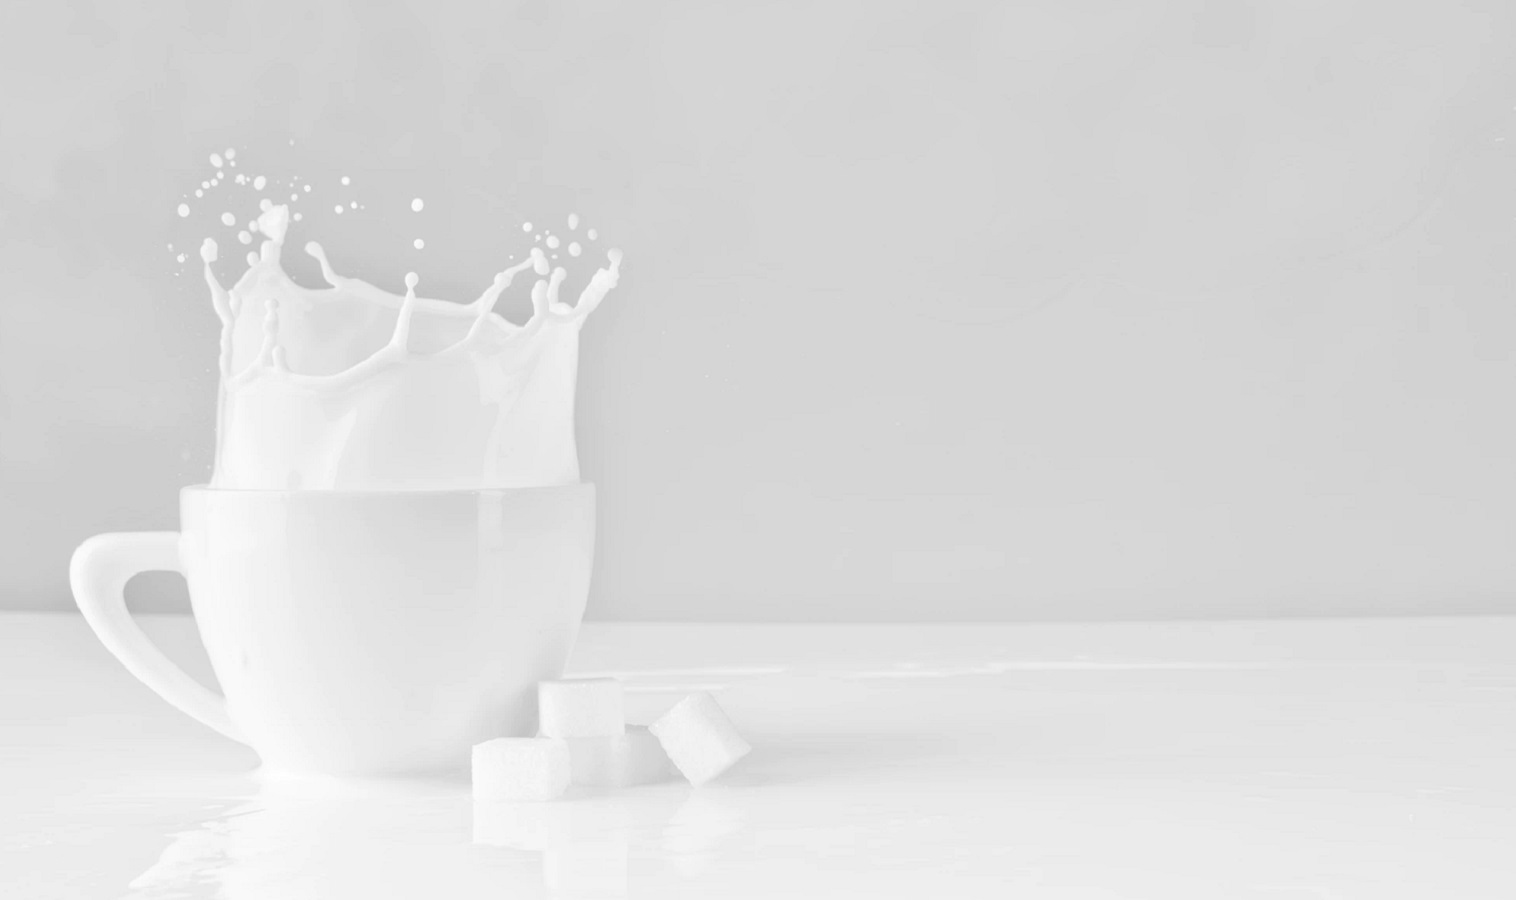 milk splashing out of a pitcher on a table